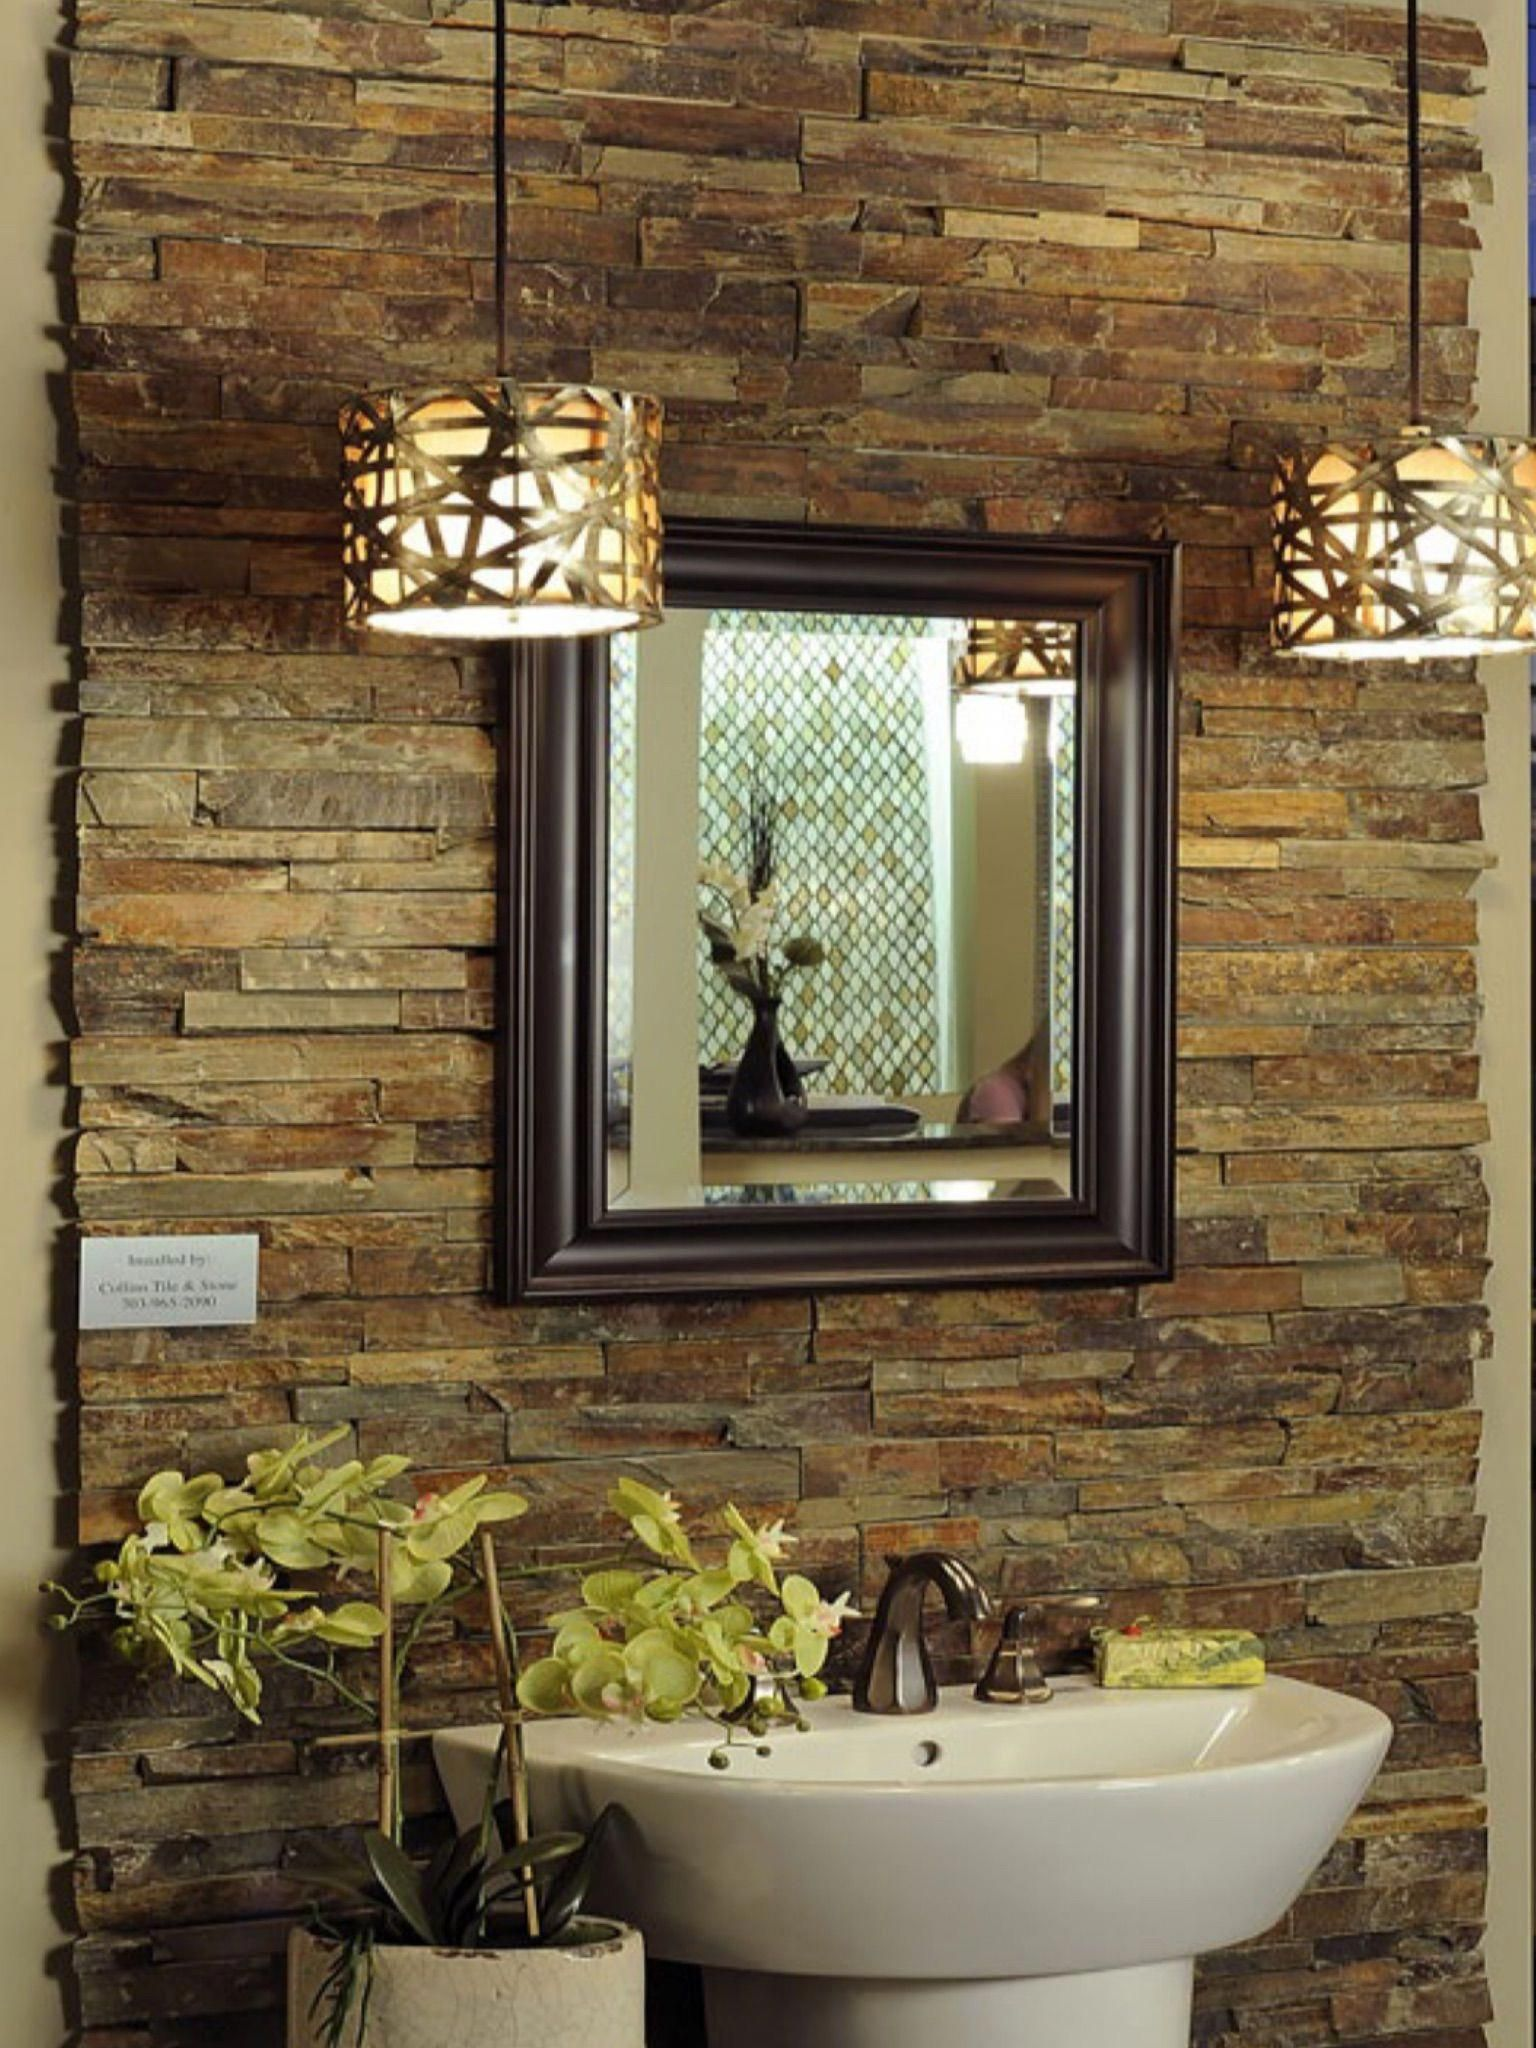 discovery 5 interior interiordecoratorhowtobecome product on interior using artificial boxwood panels with flowers id=26361